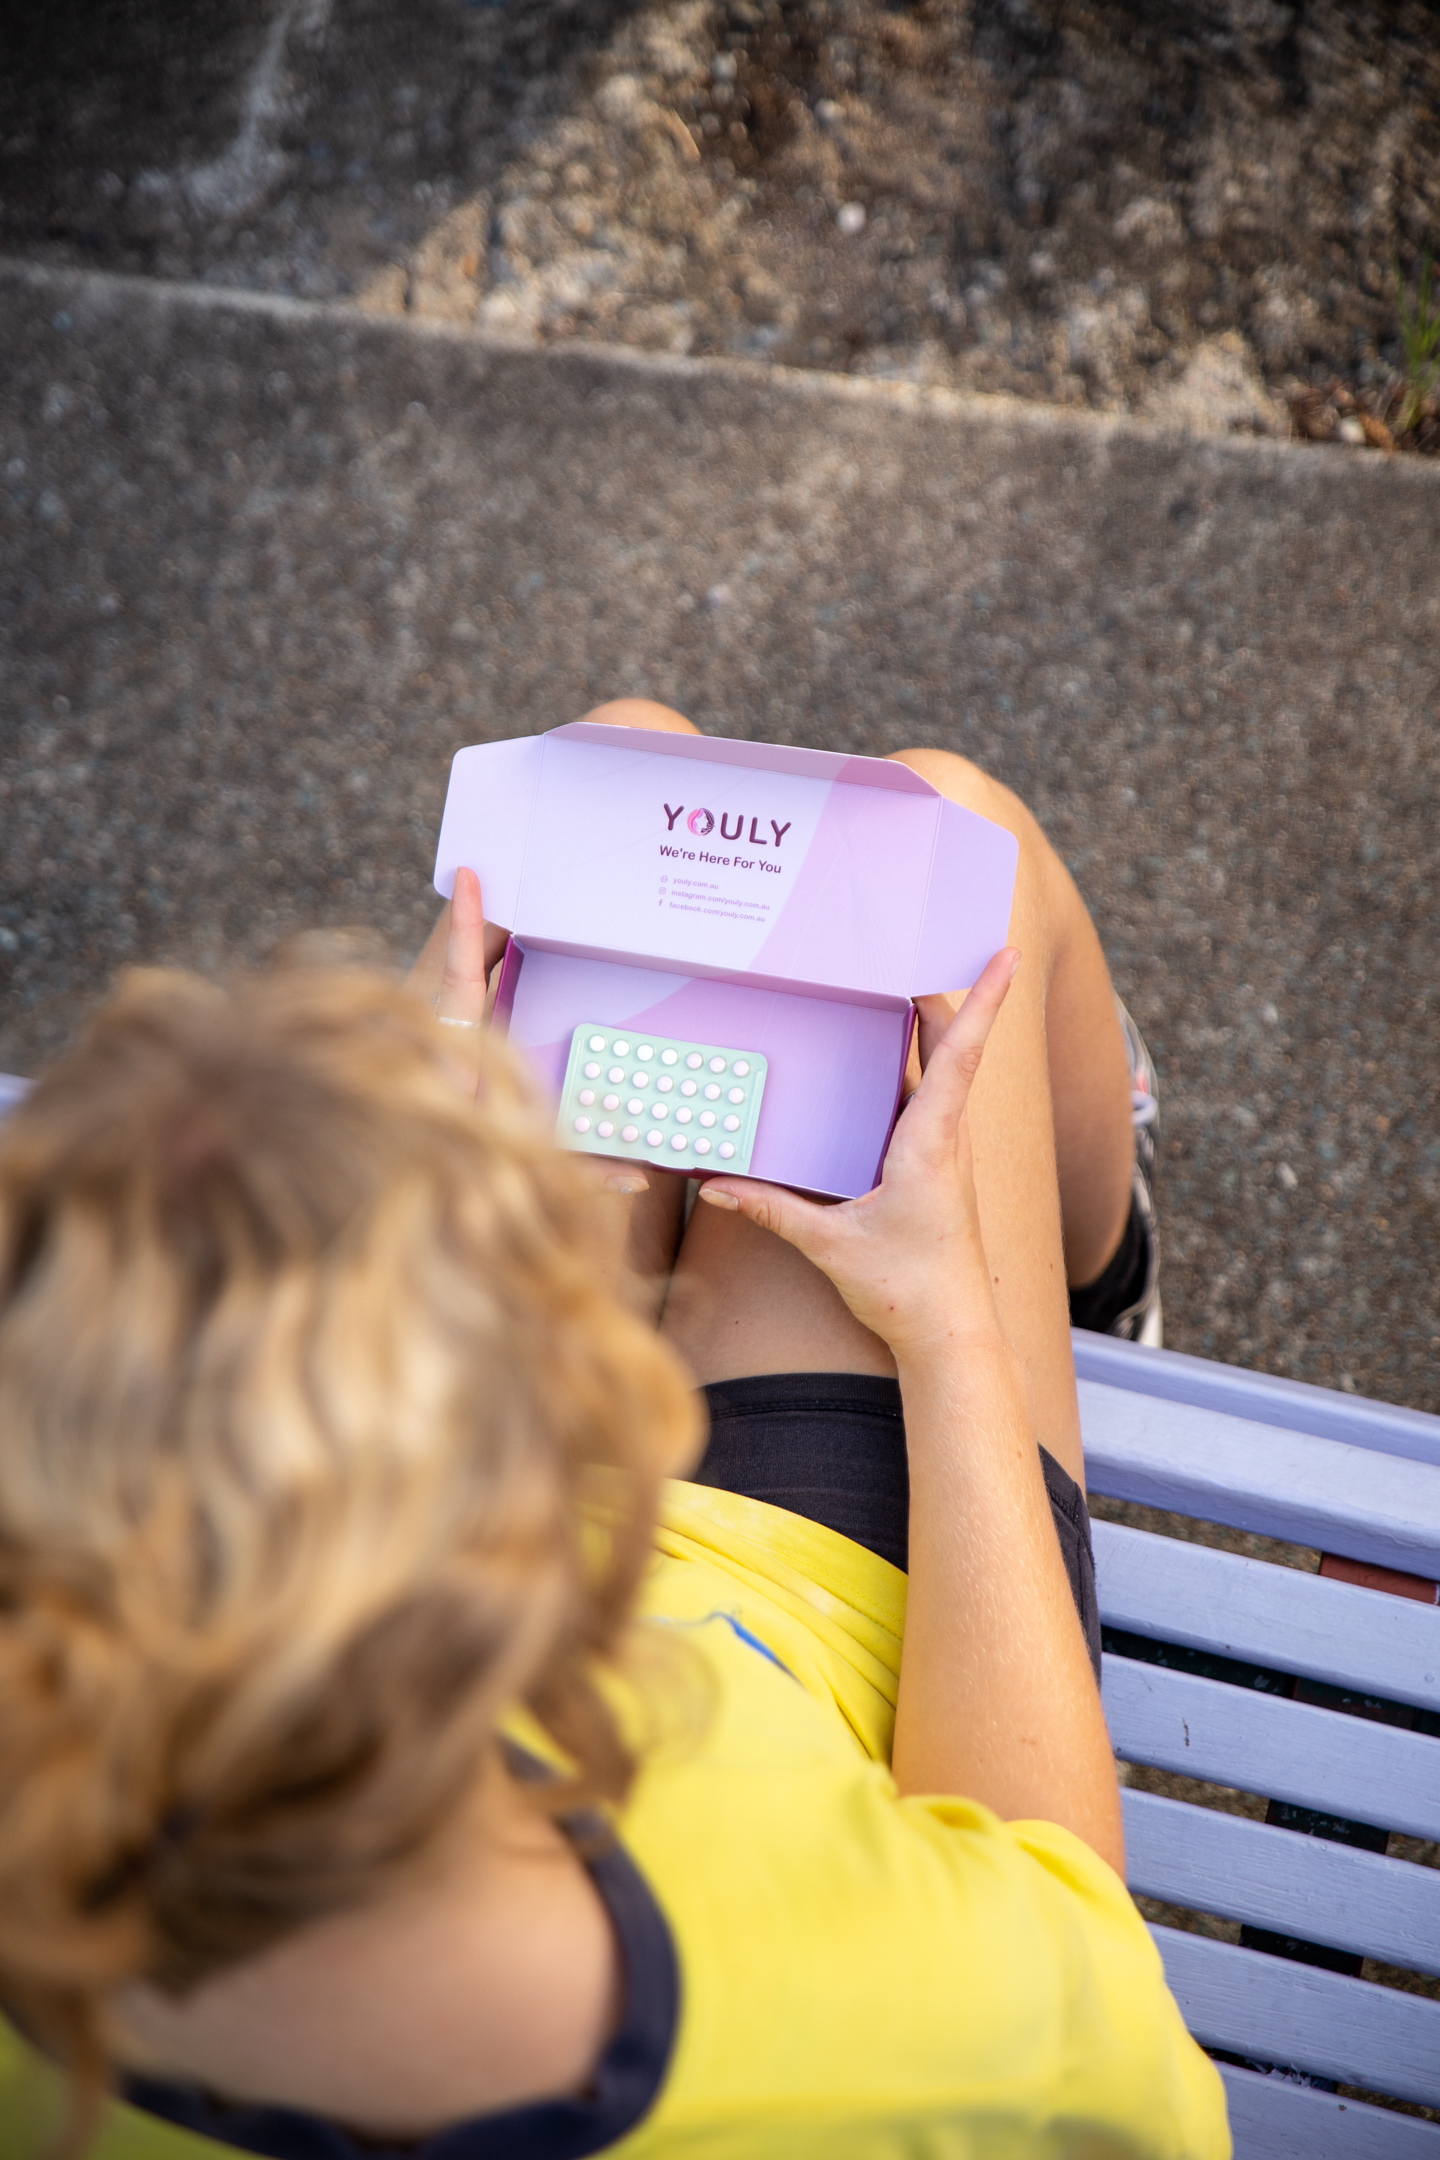 a woman on a bench opening a small box of contraceptive